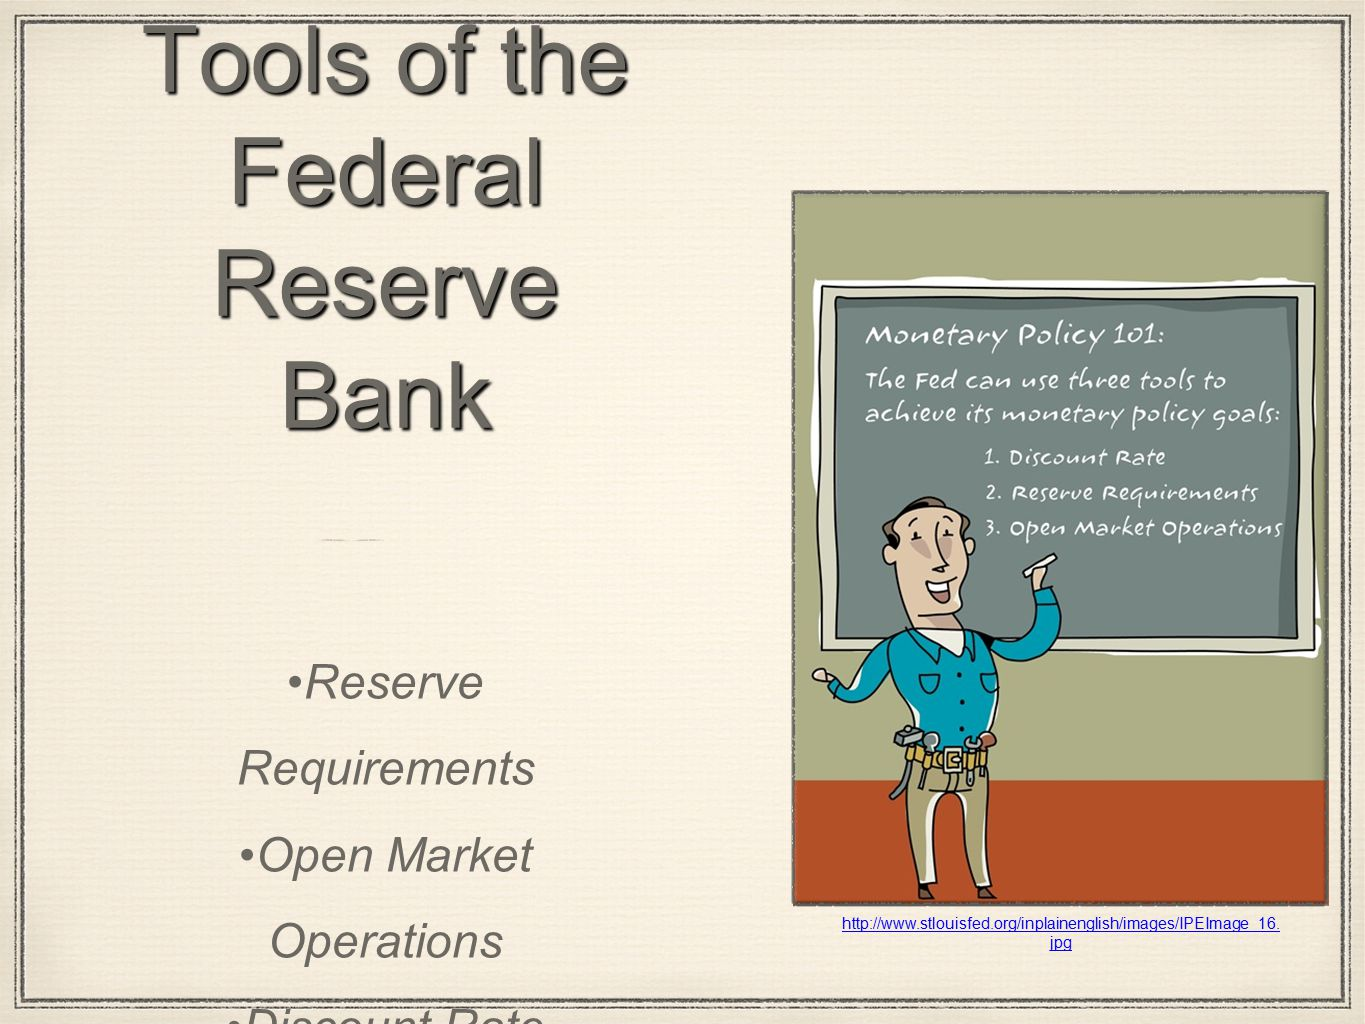 Tools of the Federal Reserve Bank Reserve Requirements Open Market Operations Discount Rate